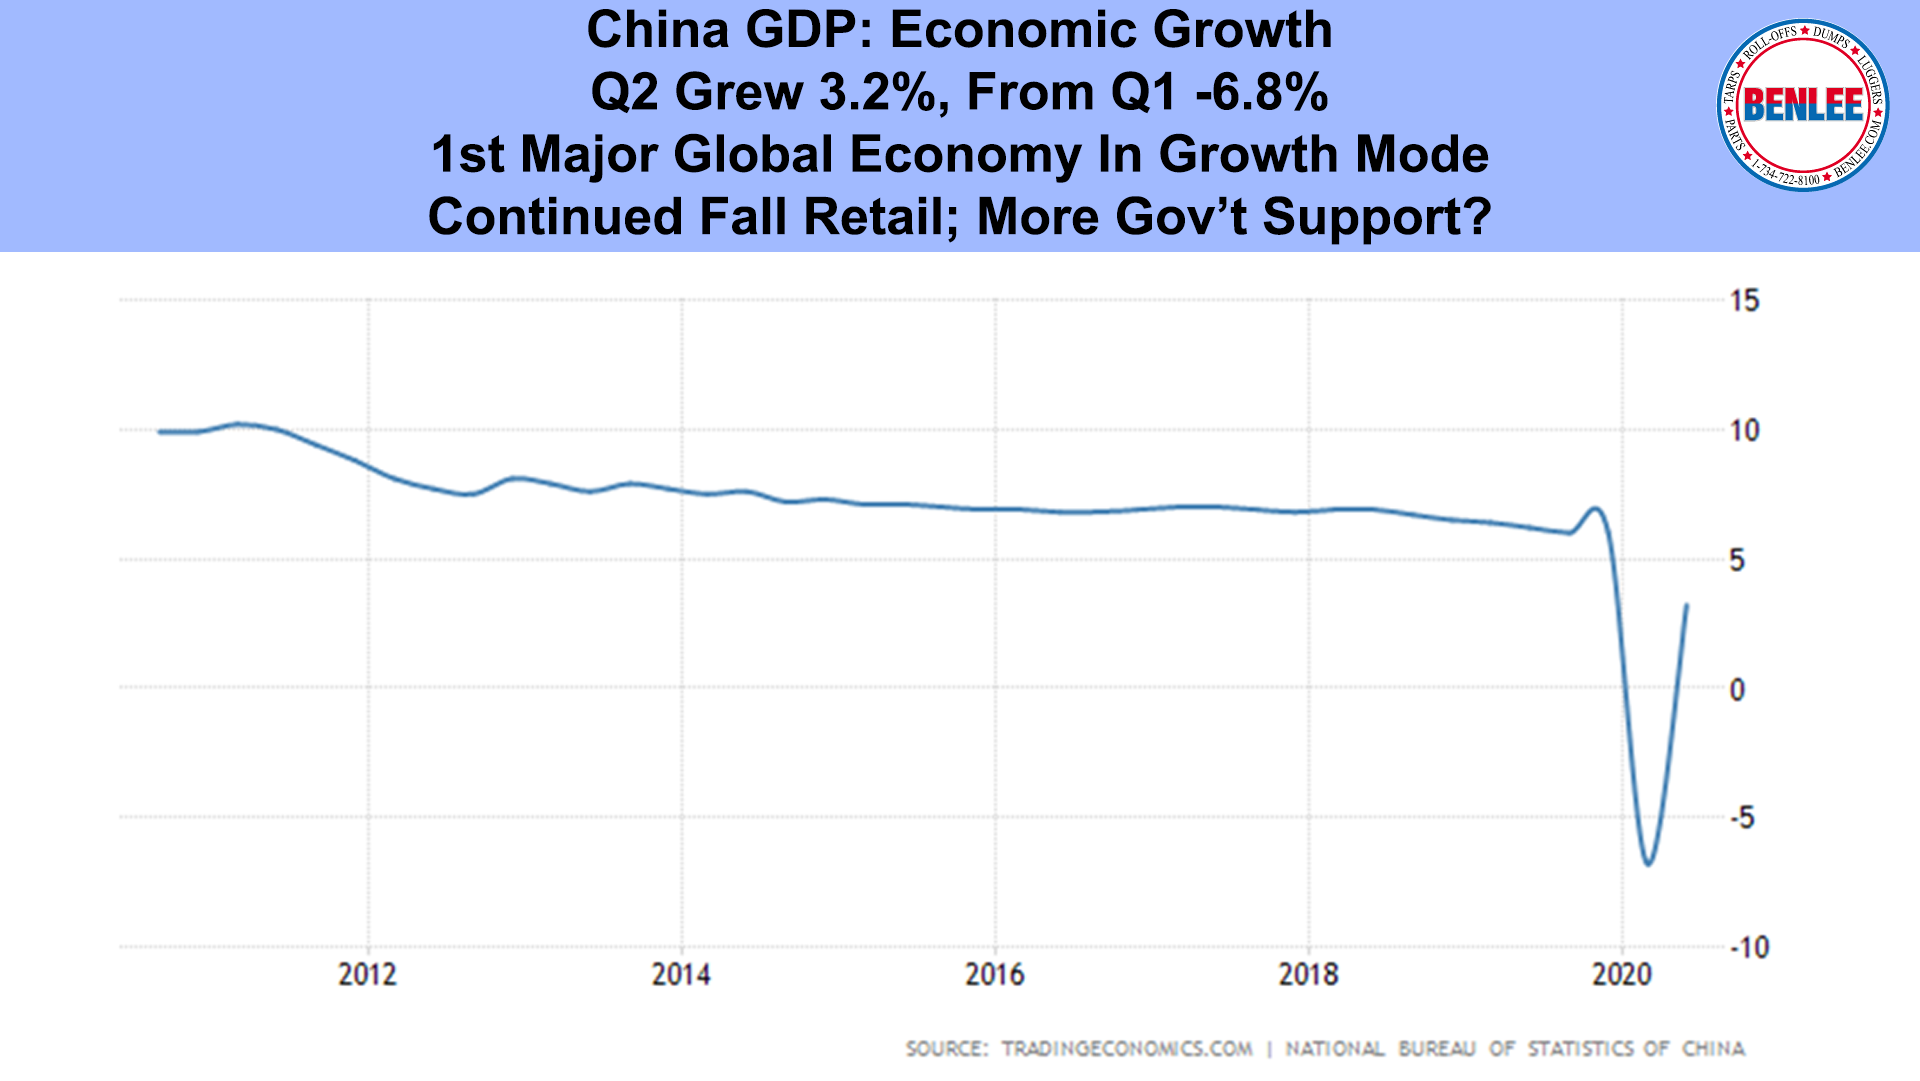 China GDP Economic Growth